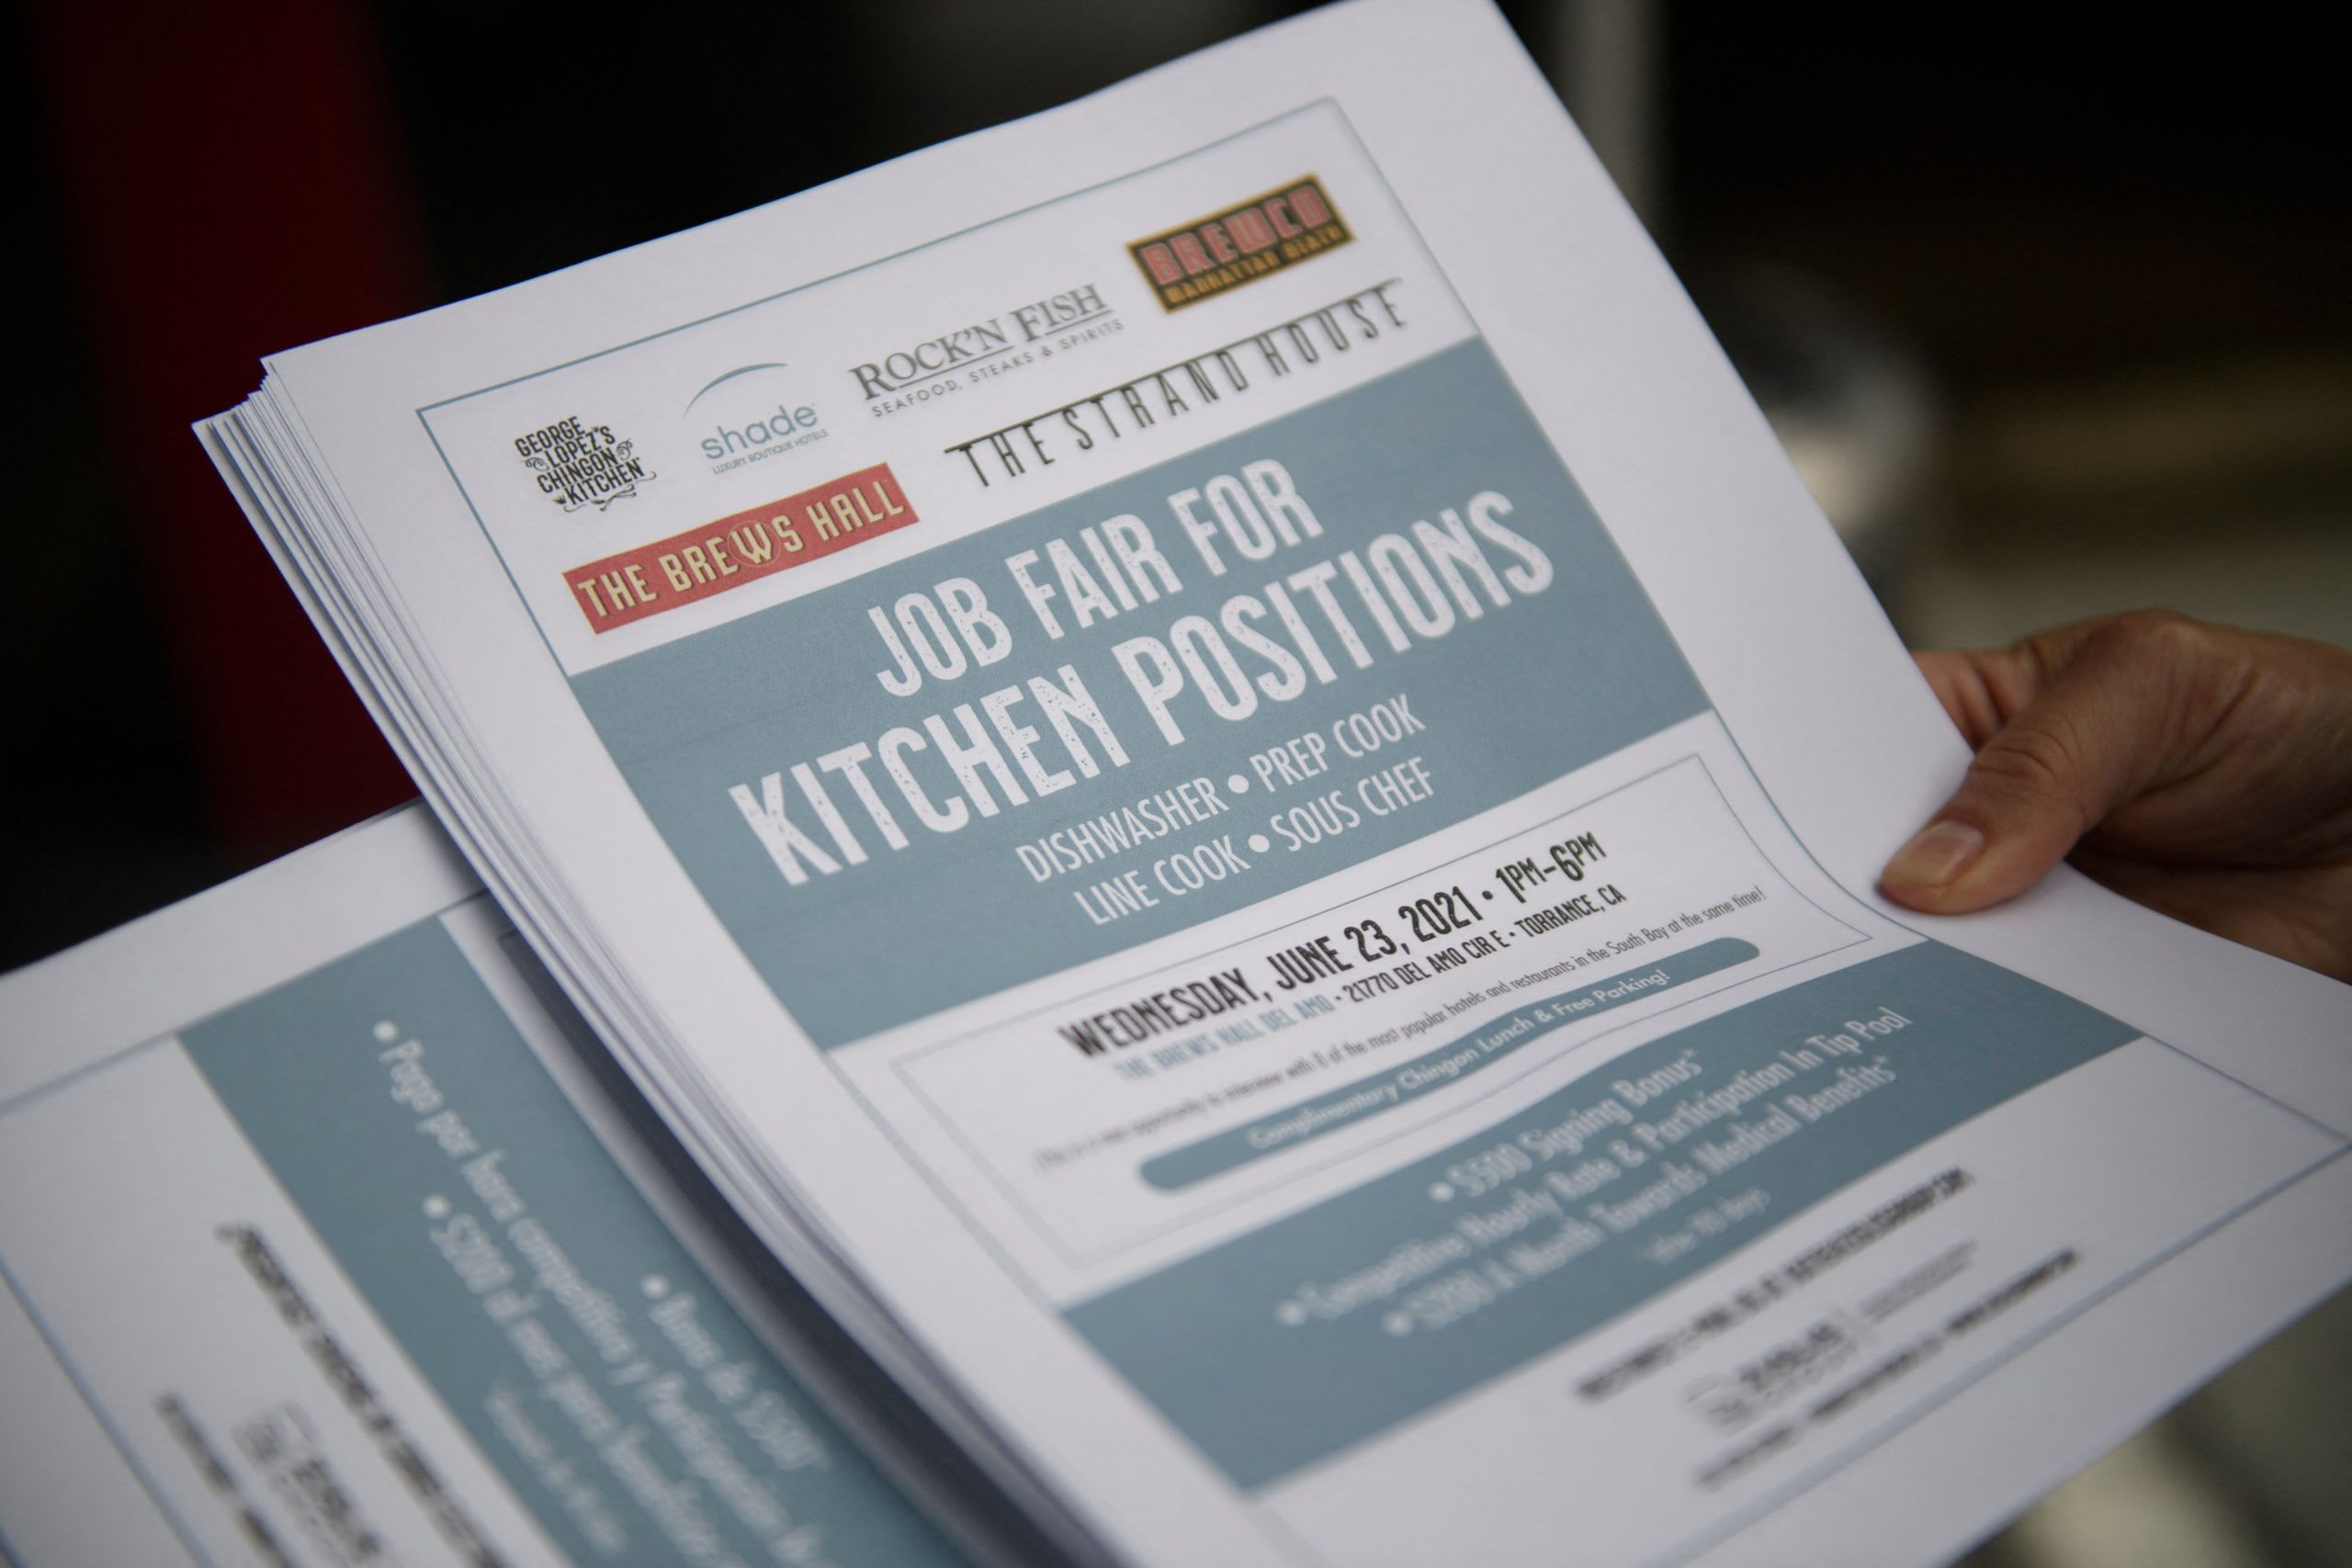 Millions may soon face lower unemployment benefits or lose them altogether